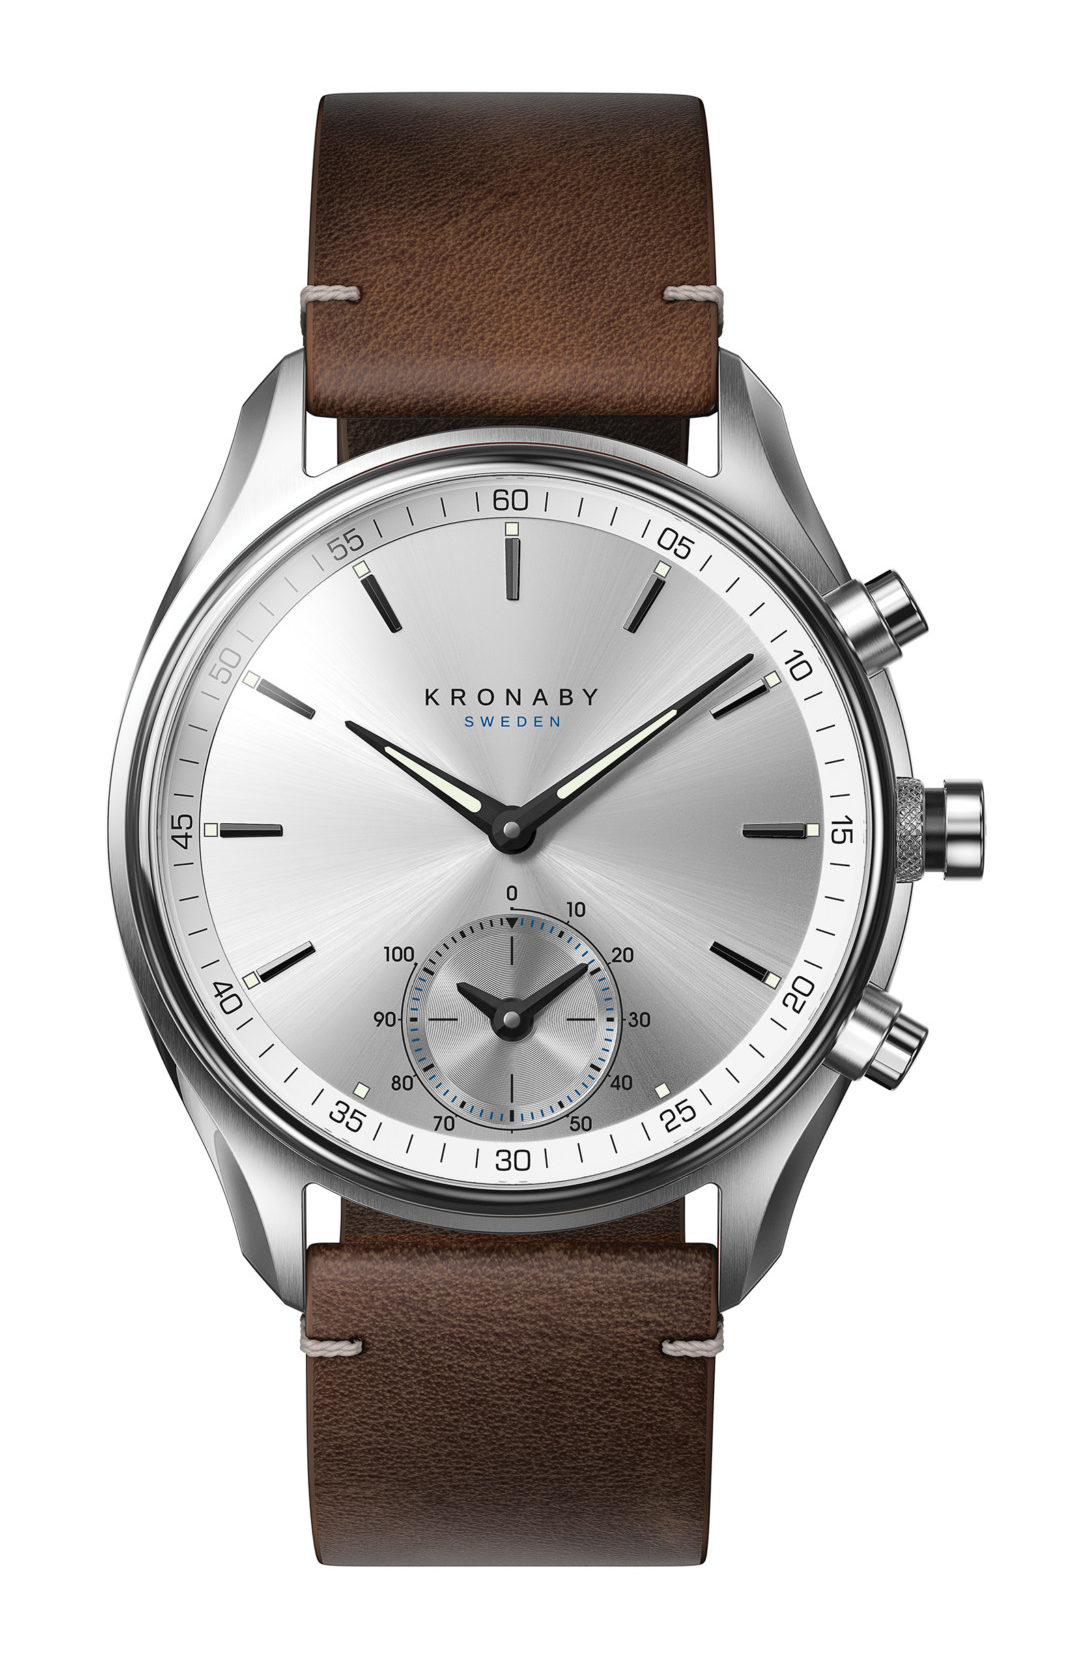 SEKEL is a homage to the art of traditional watchmaking, Kronaby's SEKEL is designed to epitomise the age-old qualities of genuine craftsmanship and analogue precision. It has a case size of 43mm and comes in nine different variants with 22mm and 18mm bracelets in stainless steel or leather.